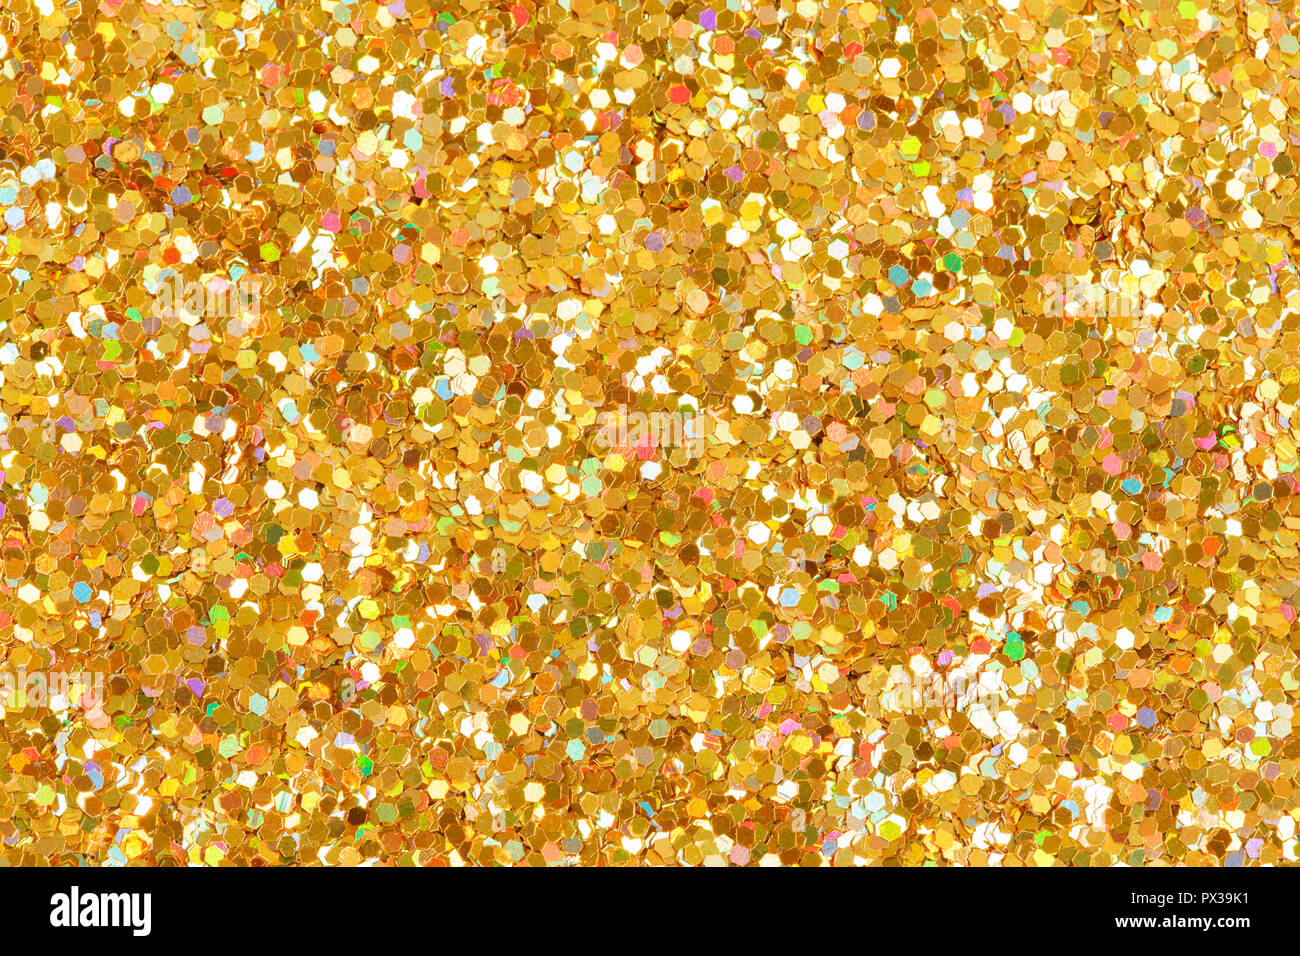 Christmas Background Images Gold.Orange Glitter Texture Christmas Background Bright Golden